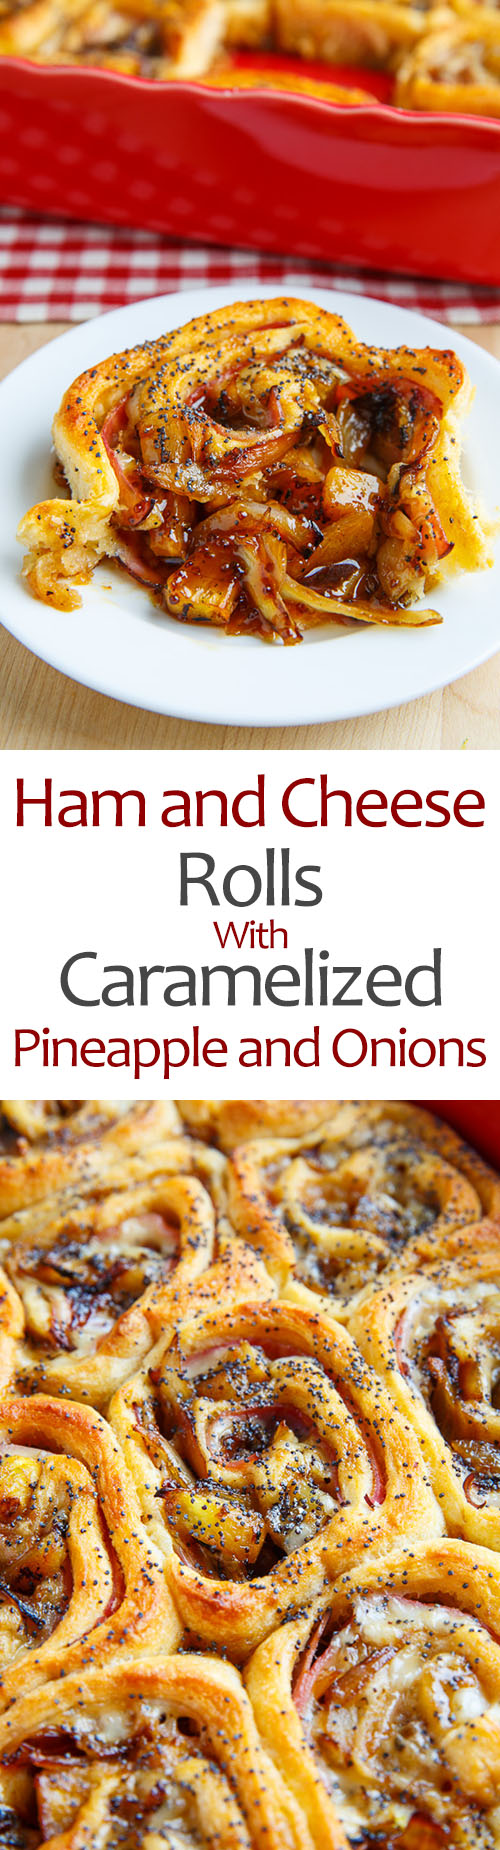 Ham and Cheese Rolls with Caramelized Pineapple and Onions